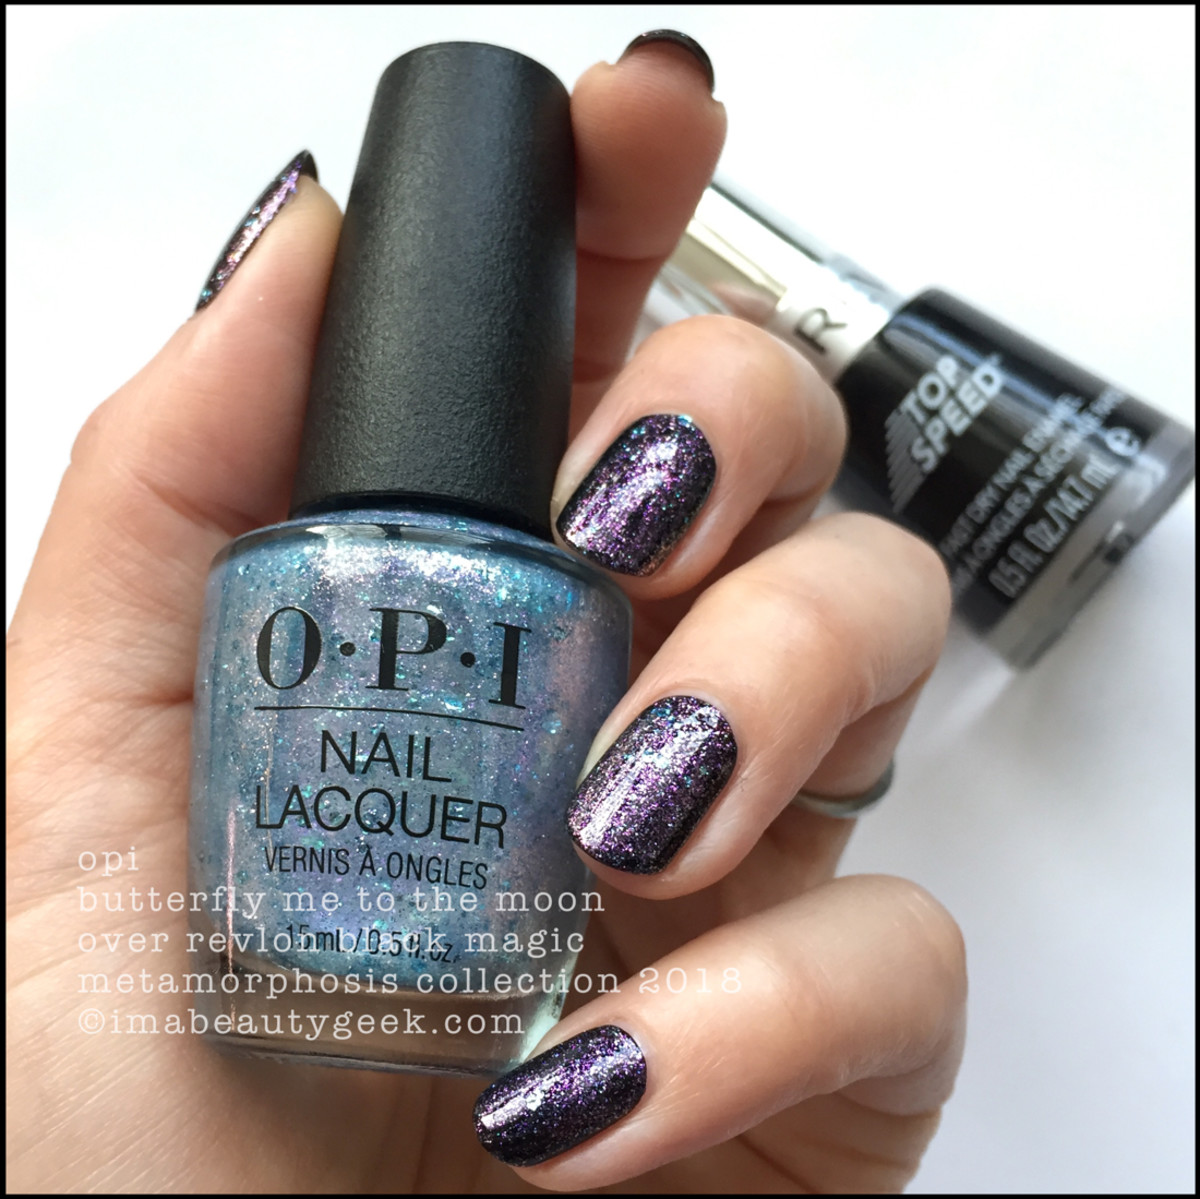 OPI Metamorphosis Collection - OPI Butterfly Me To The Moon